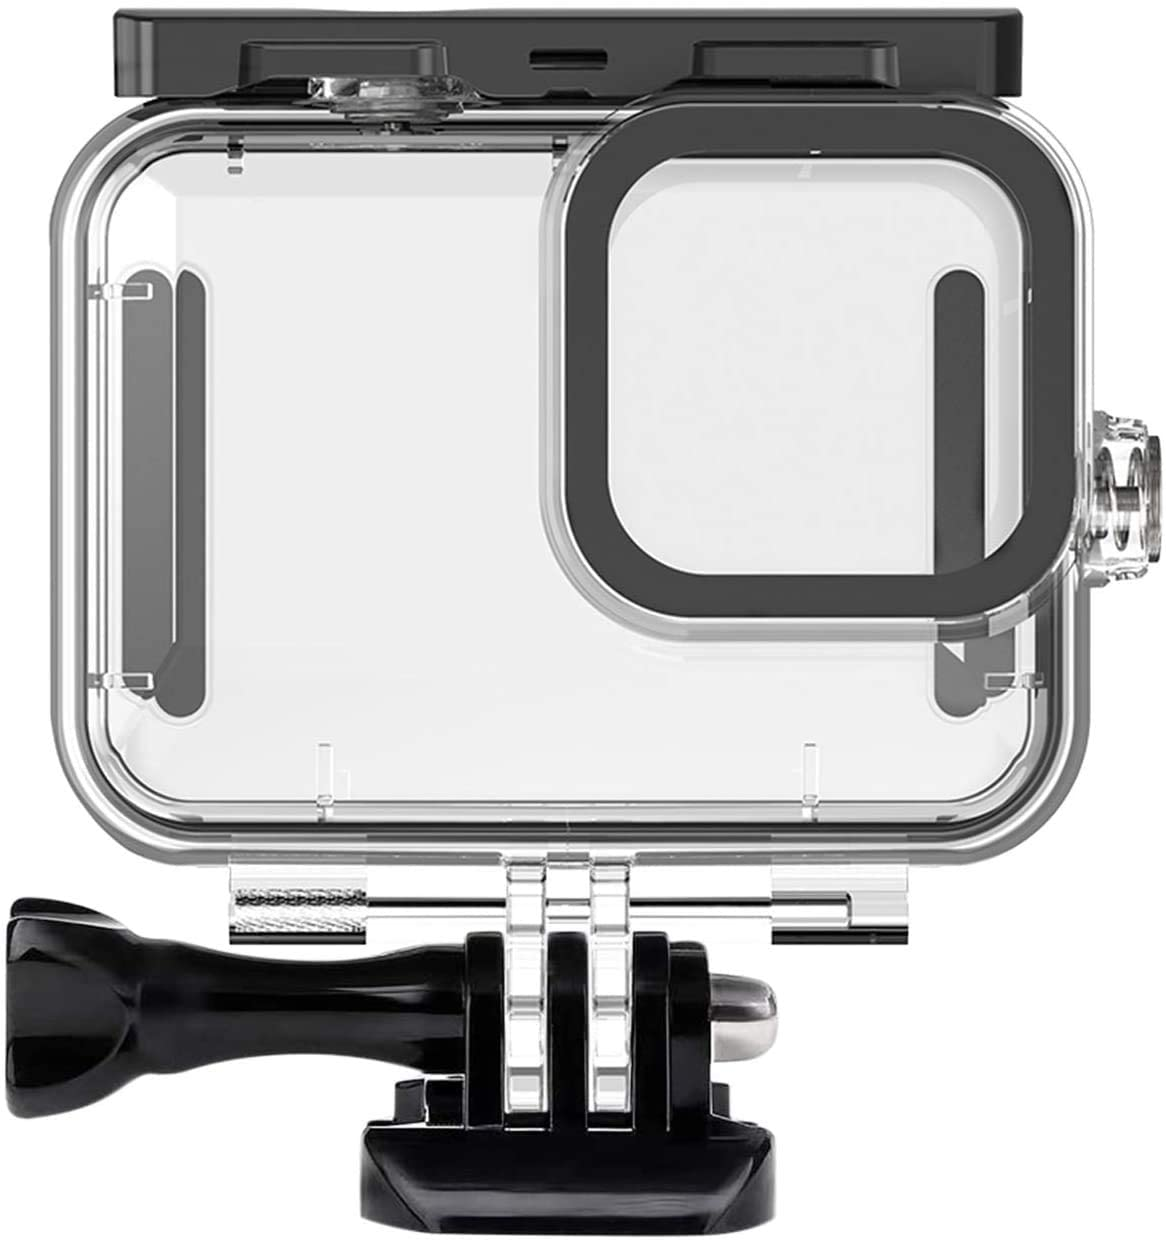 Funda Waterproof Para Gopro Hero 9 black (hasta 50 Metros)